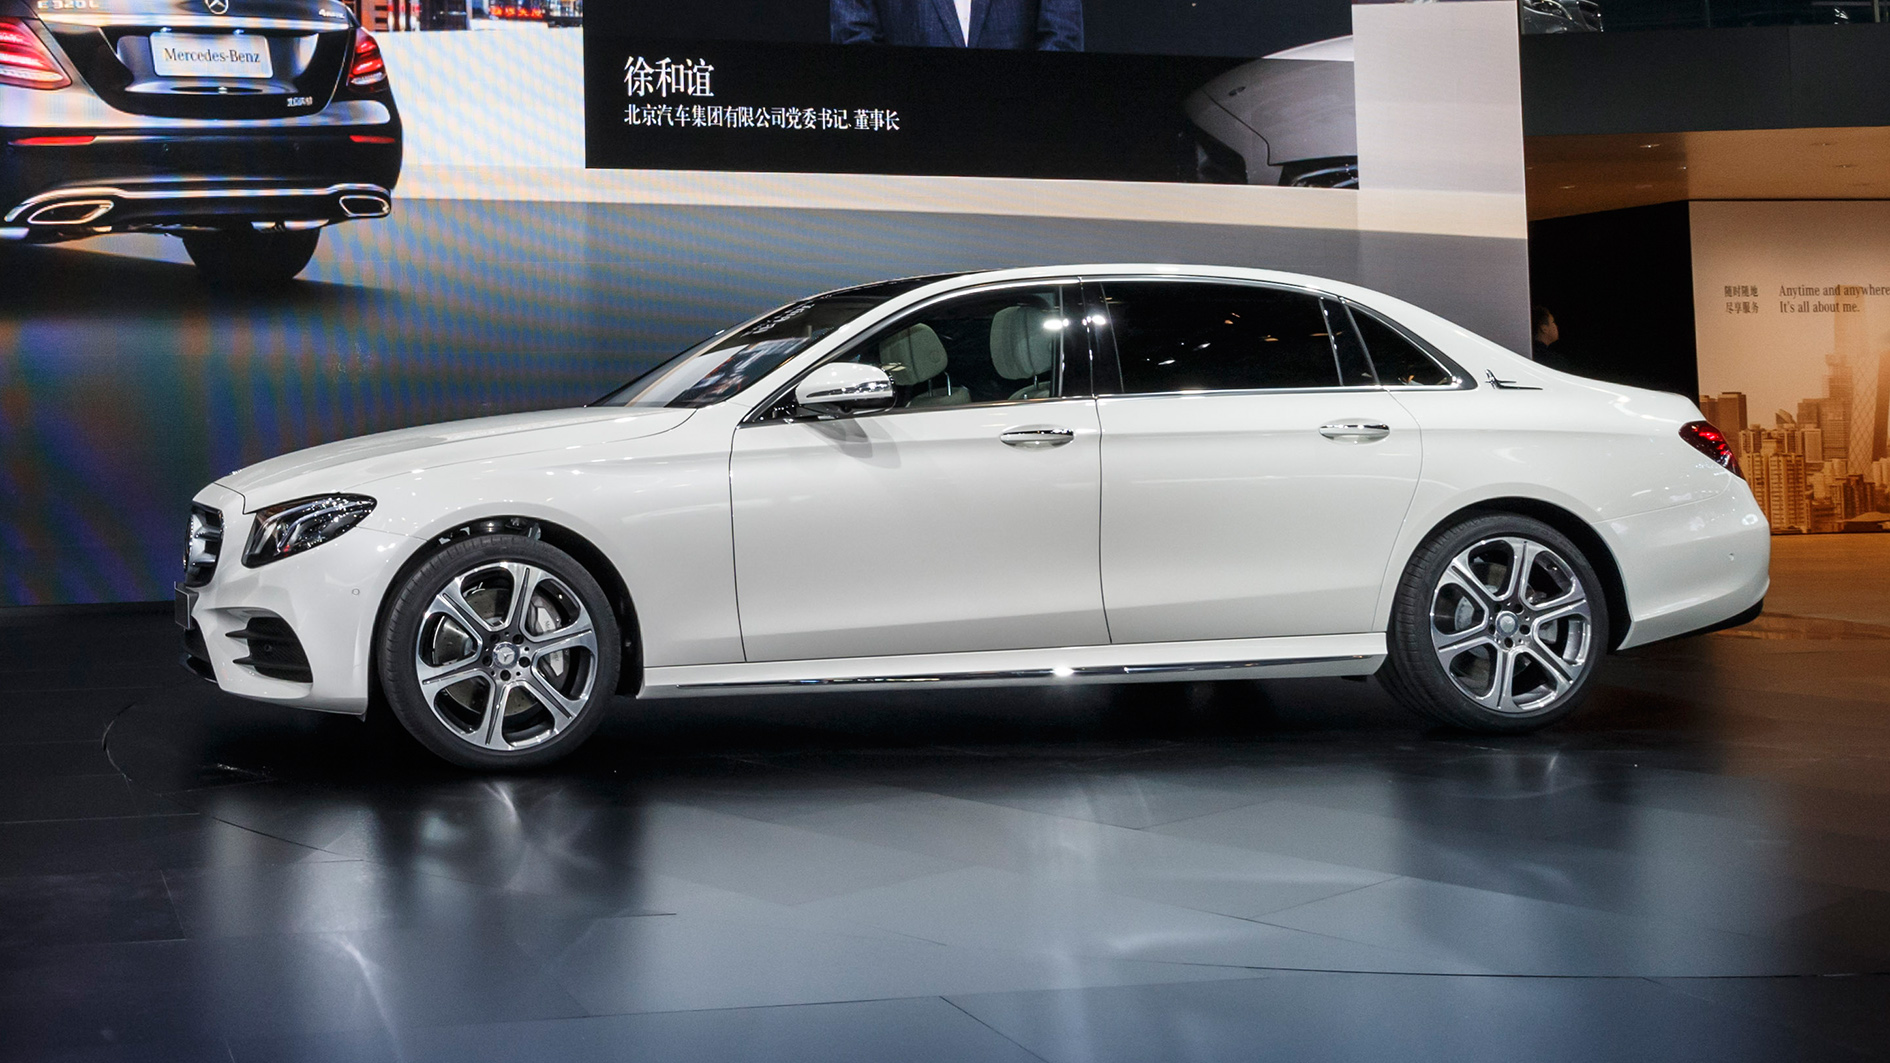 Mercedes Benz And Smart At The Auto China Beijing 2016